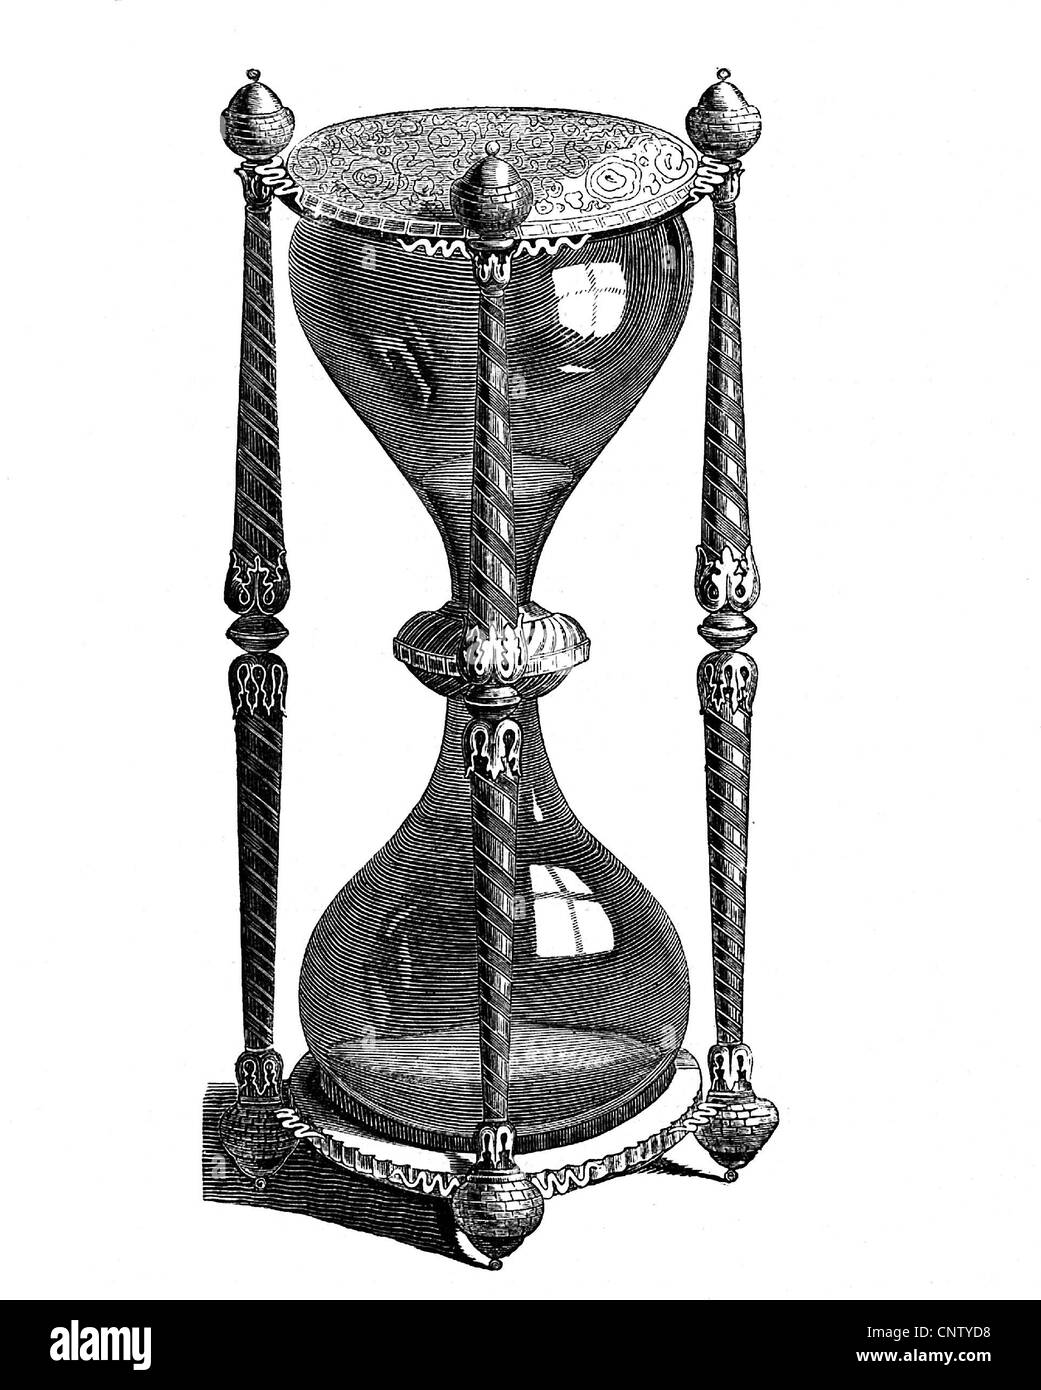 clocks, hour glass, historic, historical, hour glass, hourglass, hour glasses, hourglasses, sand glass, clock, clocks, - Stock Image